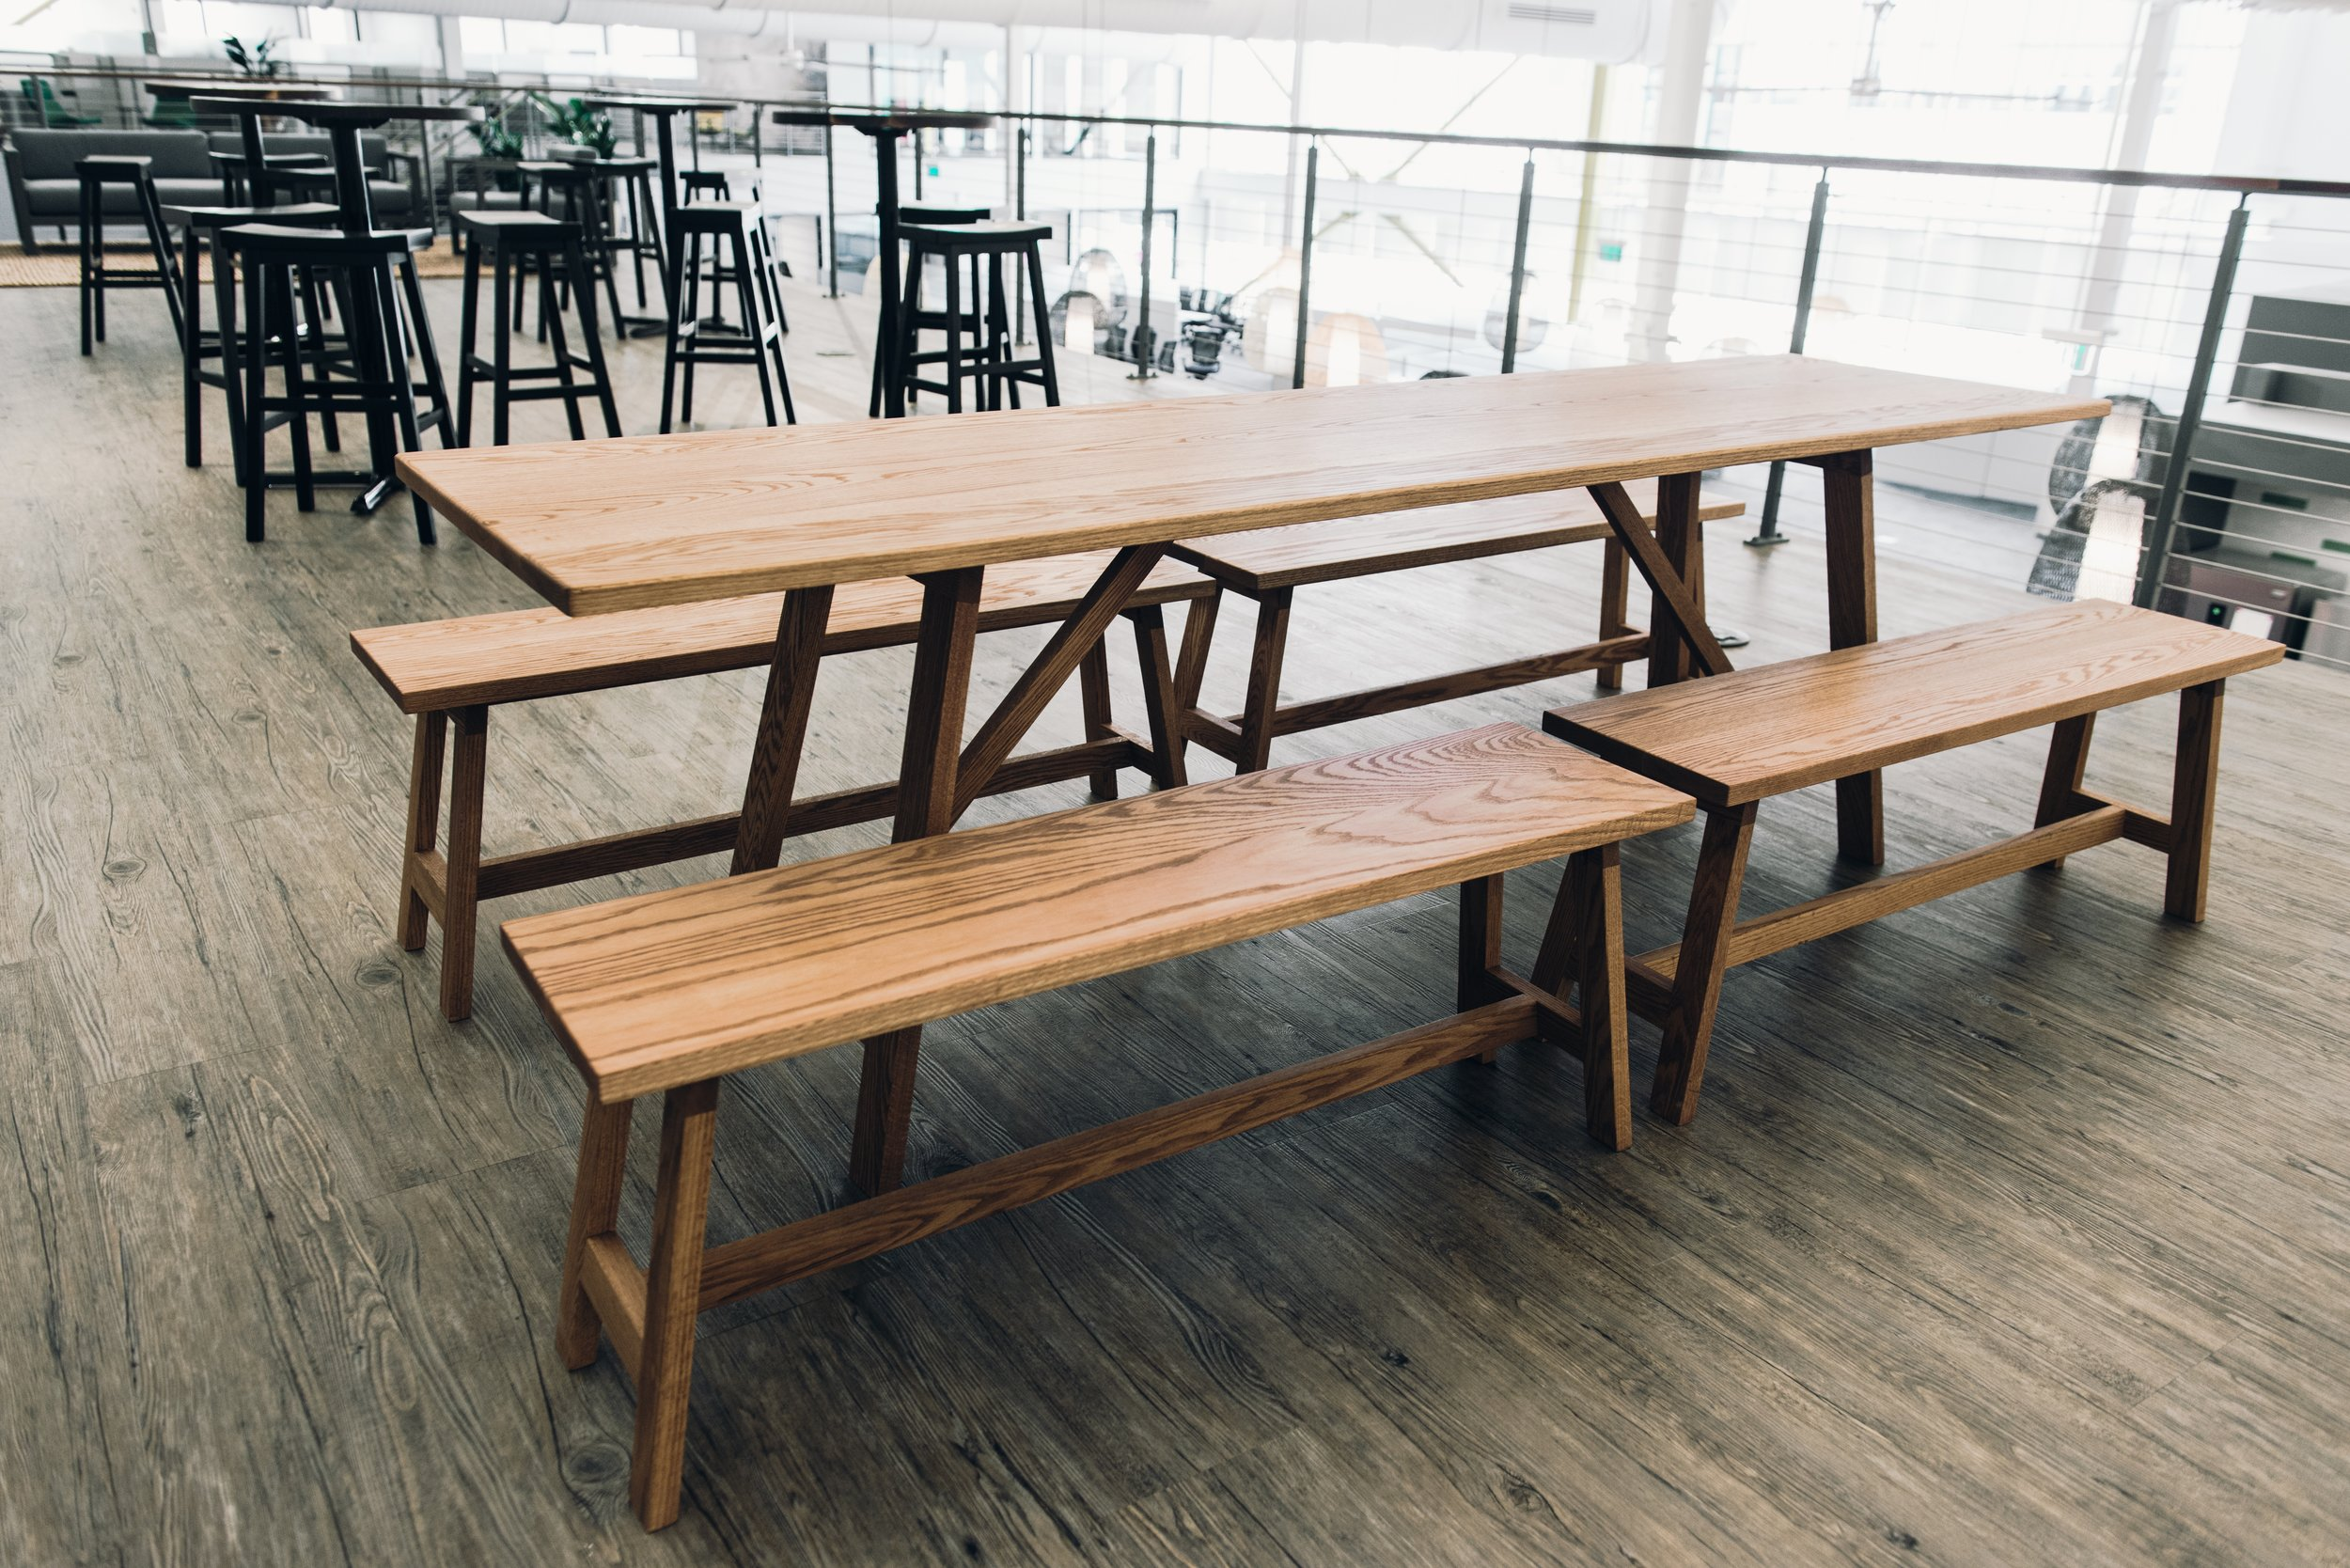 8' Beer Garden table with benches in Bourbon